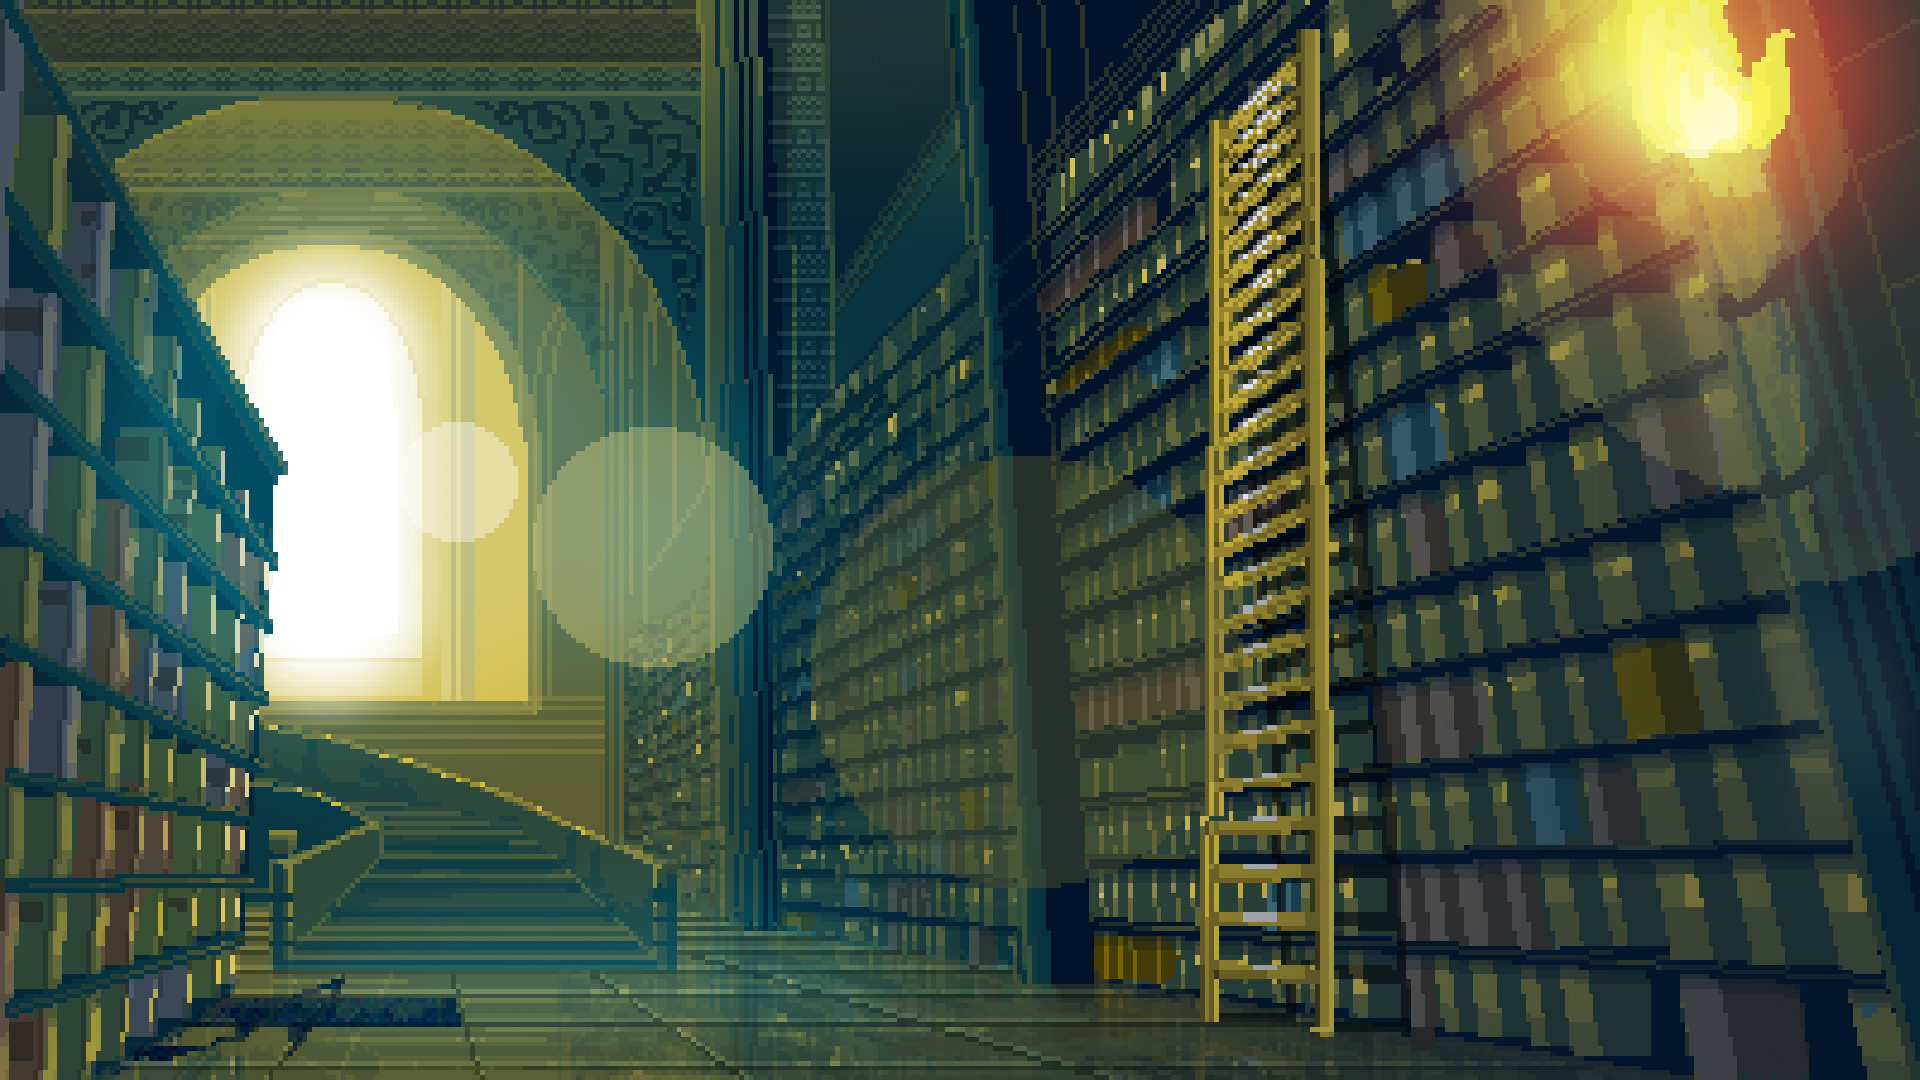 Pixel Library HD Wallpaper Background Image 1920x1080 ID 1920x1080